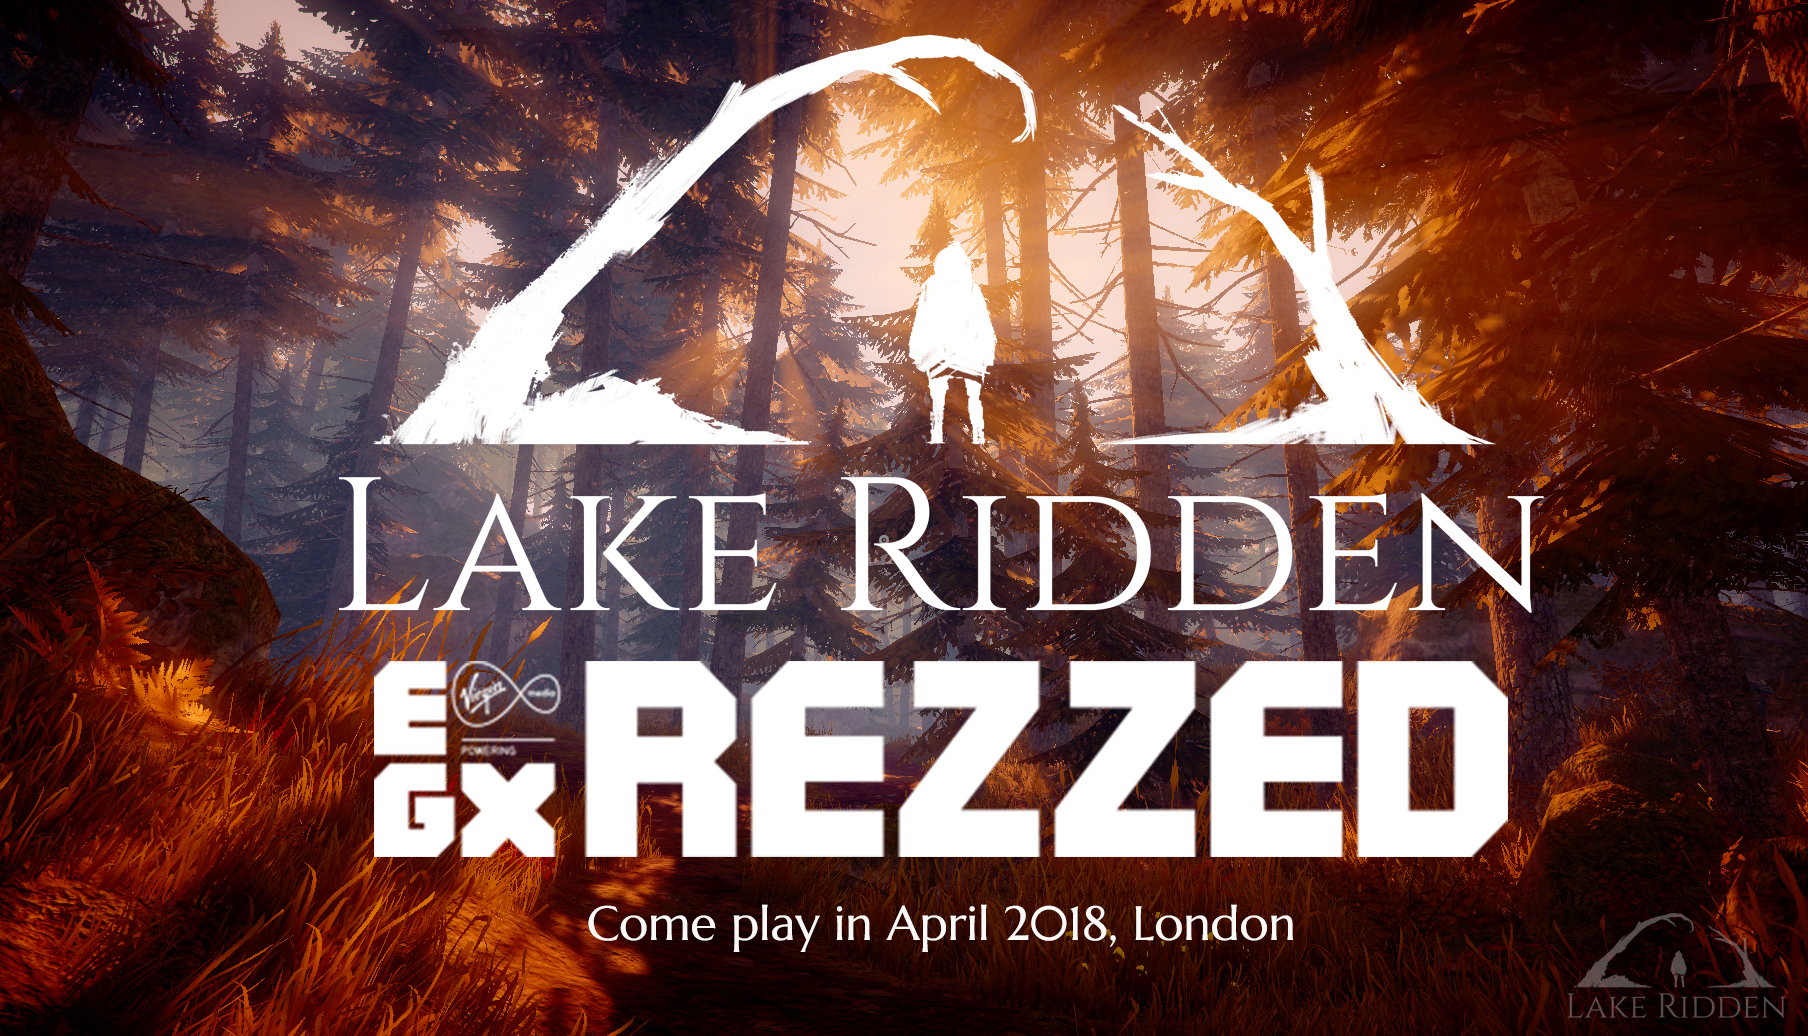 Lake Ridden is more Myst than Minecraft